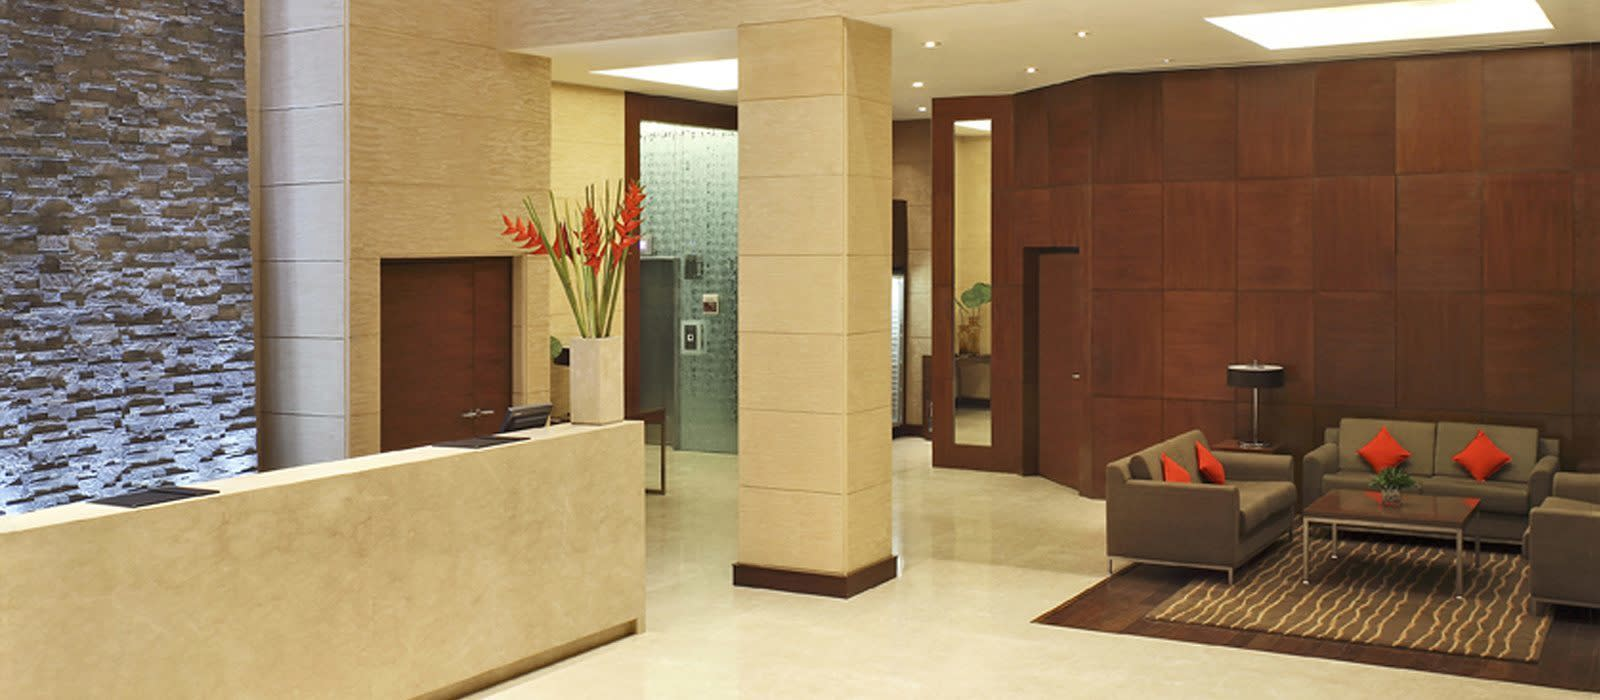 Hotel Hilton Garden Inn North India